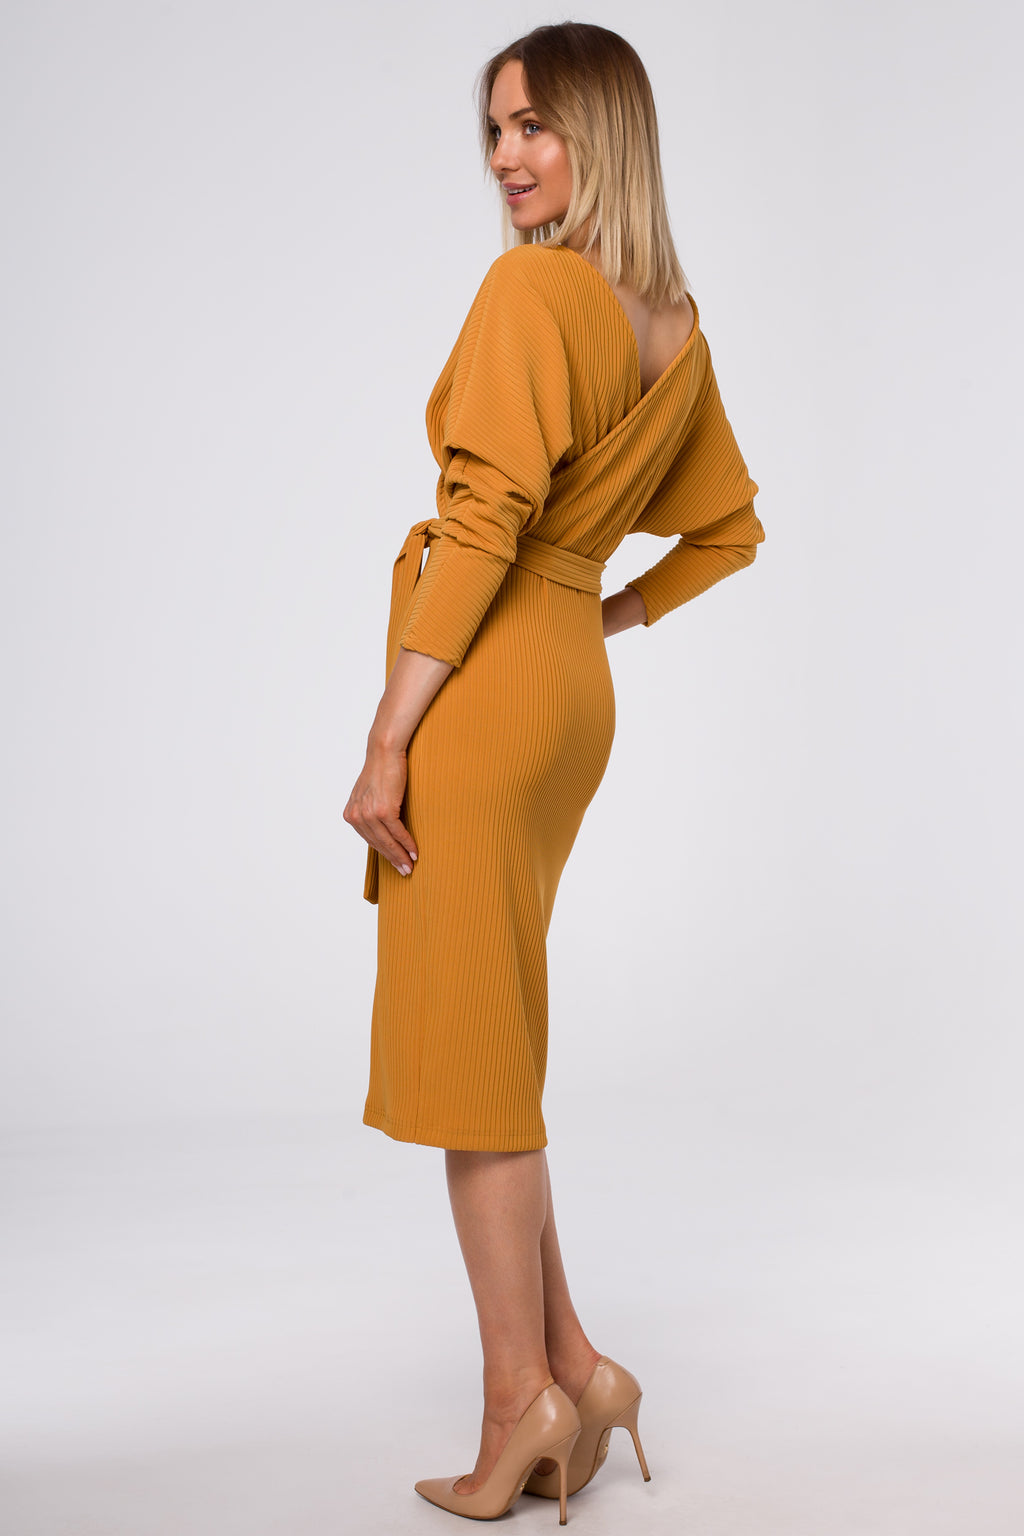 Midi Knit Mustard Dress With Wrap Top And A Belt - So Chic Boutique